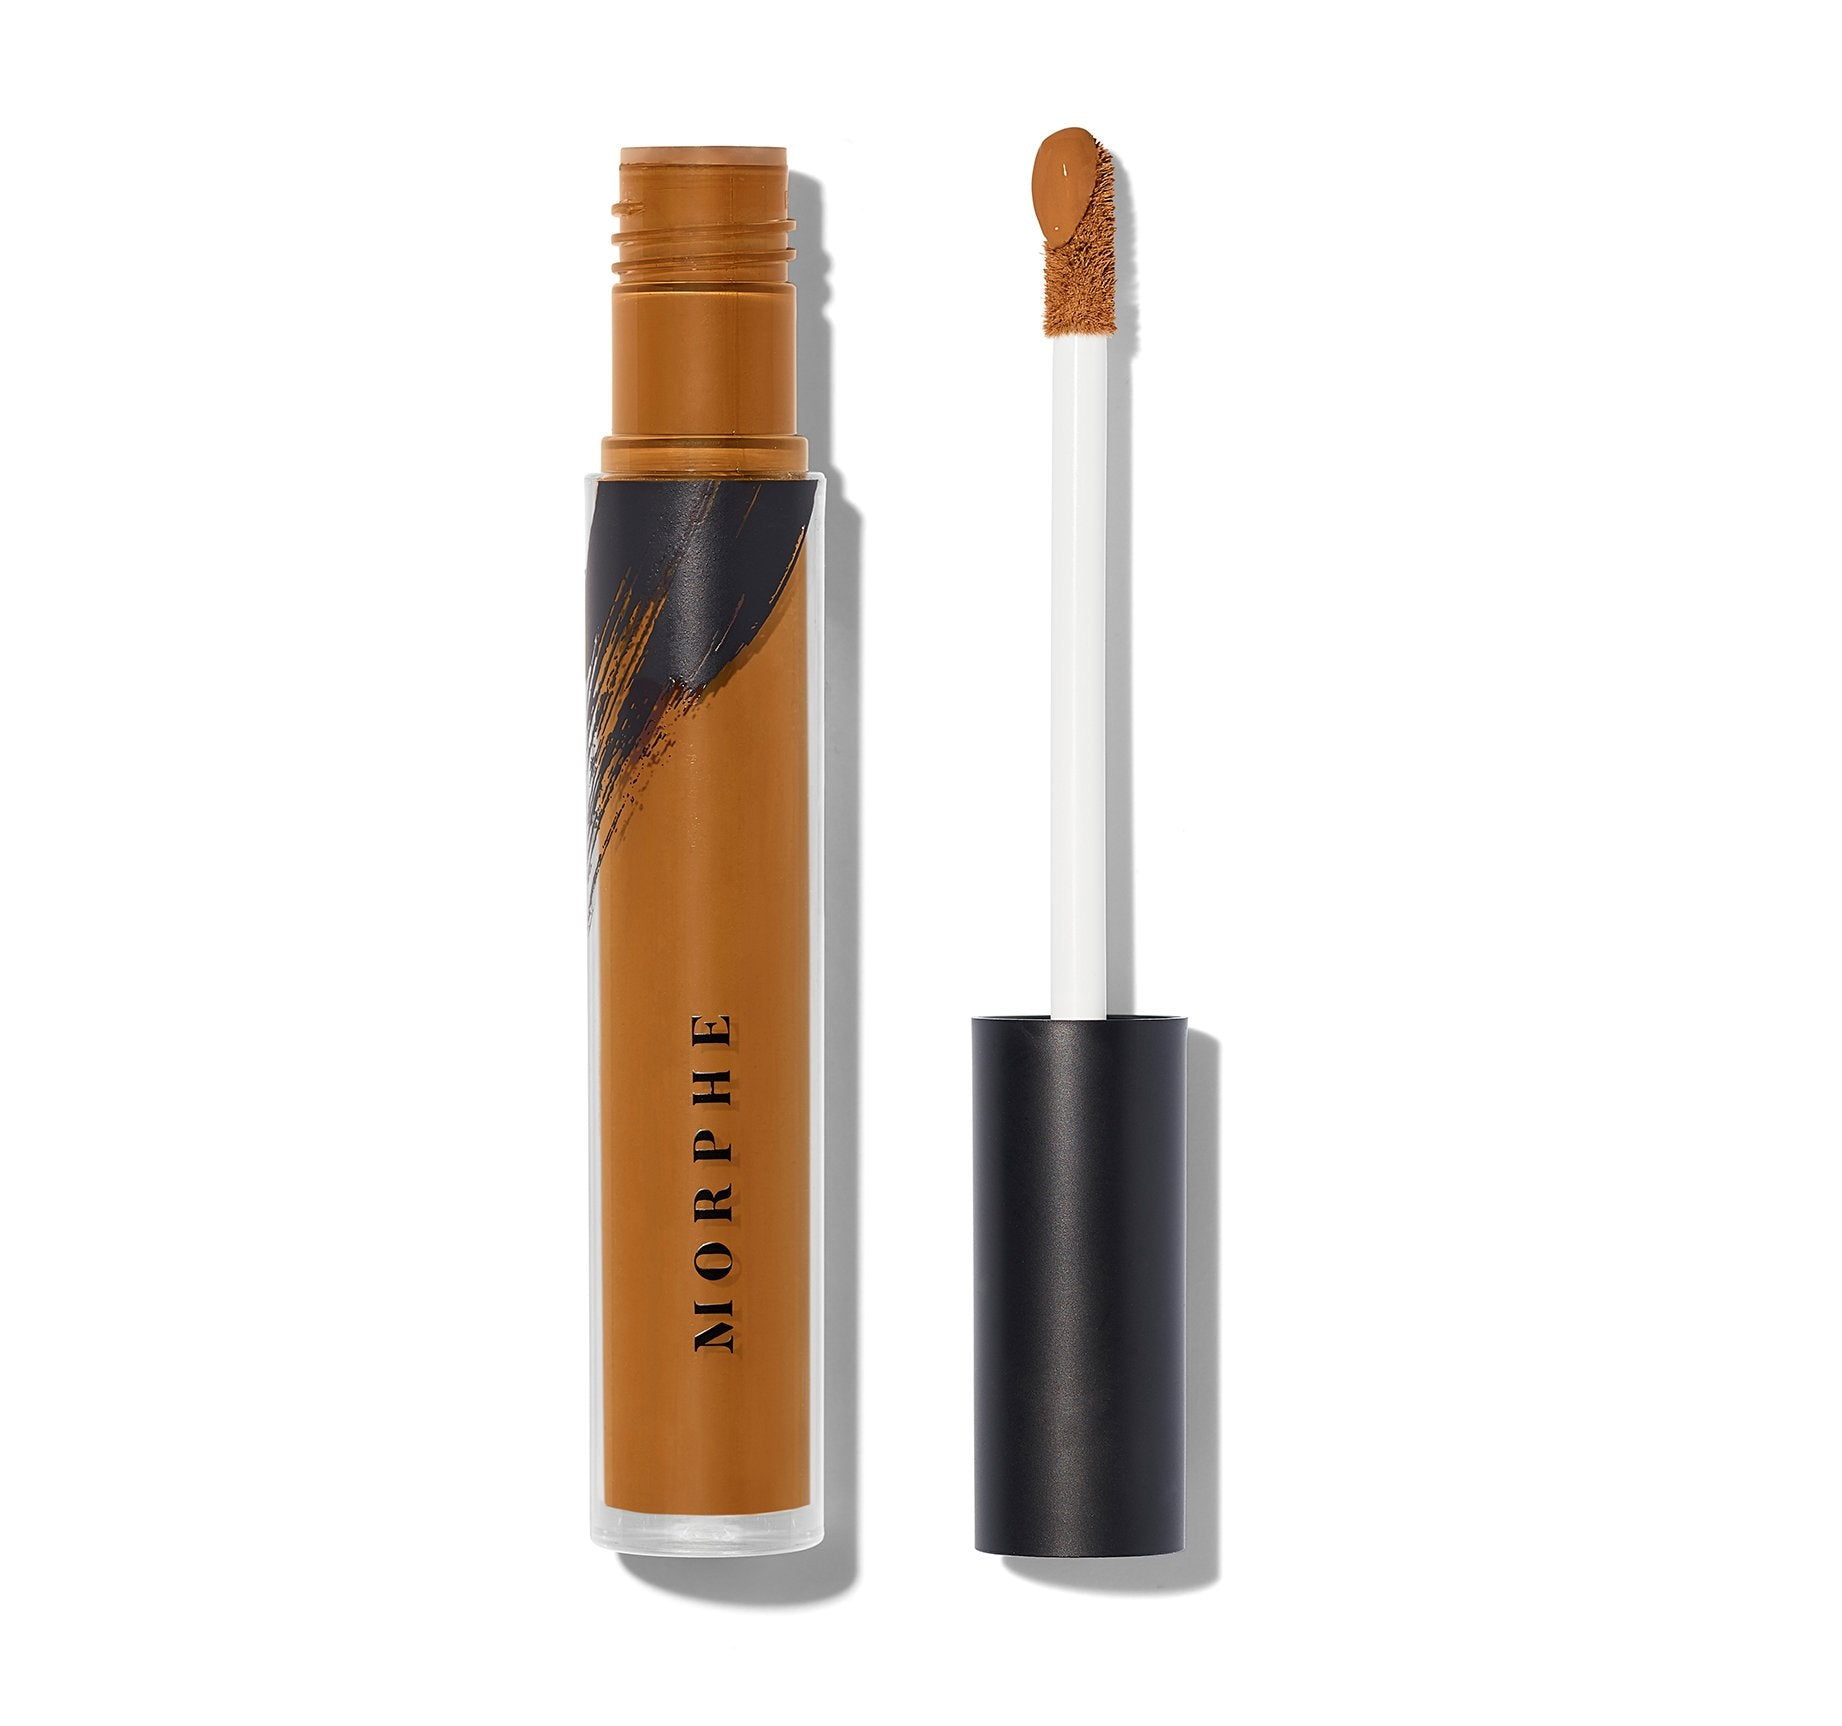 FLUIDITY FULL-COVERAGE CONCEALER - C4.25, view larger image